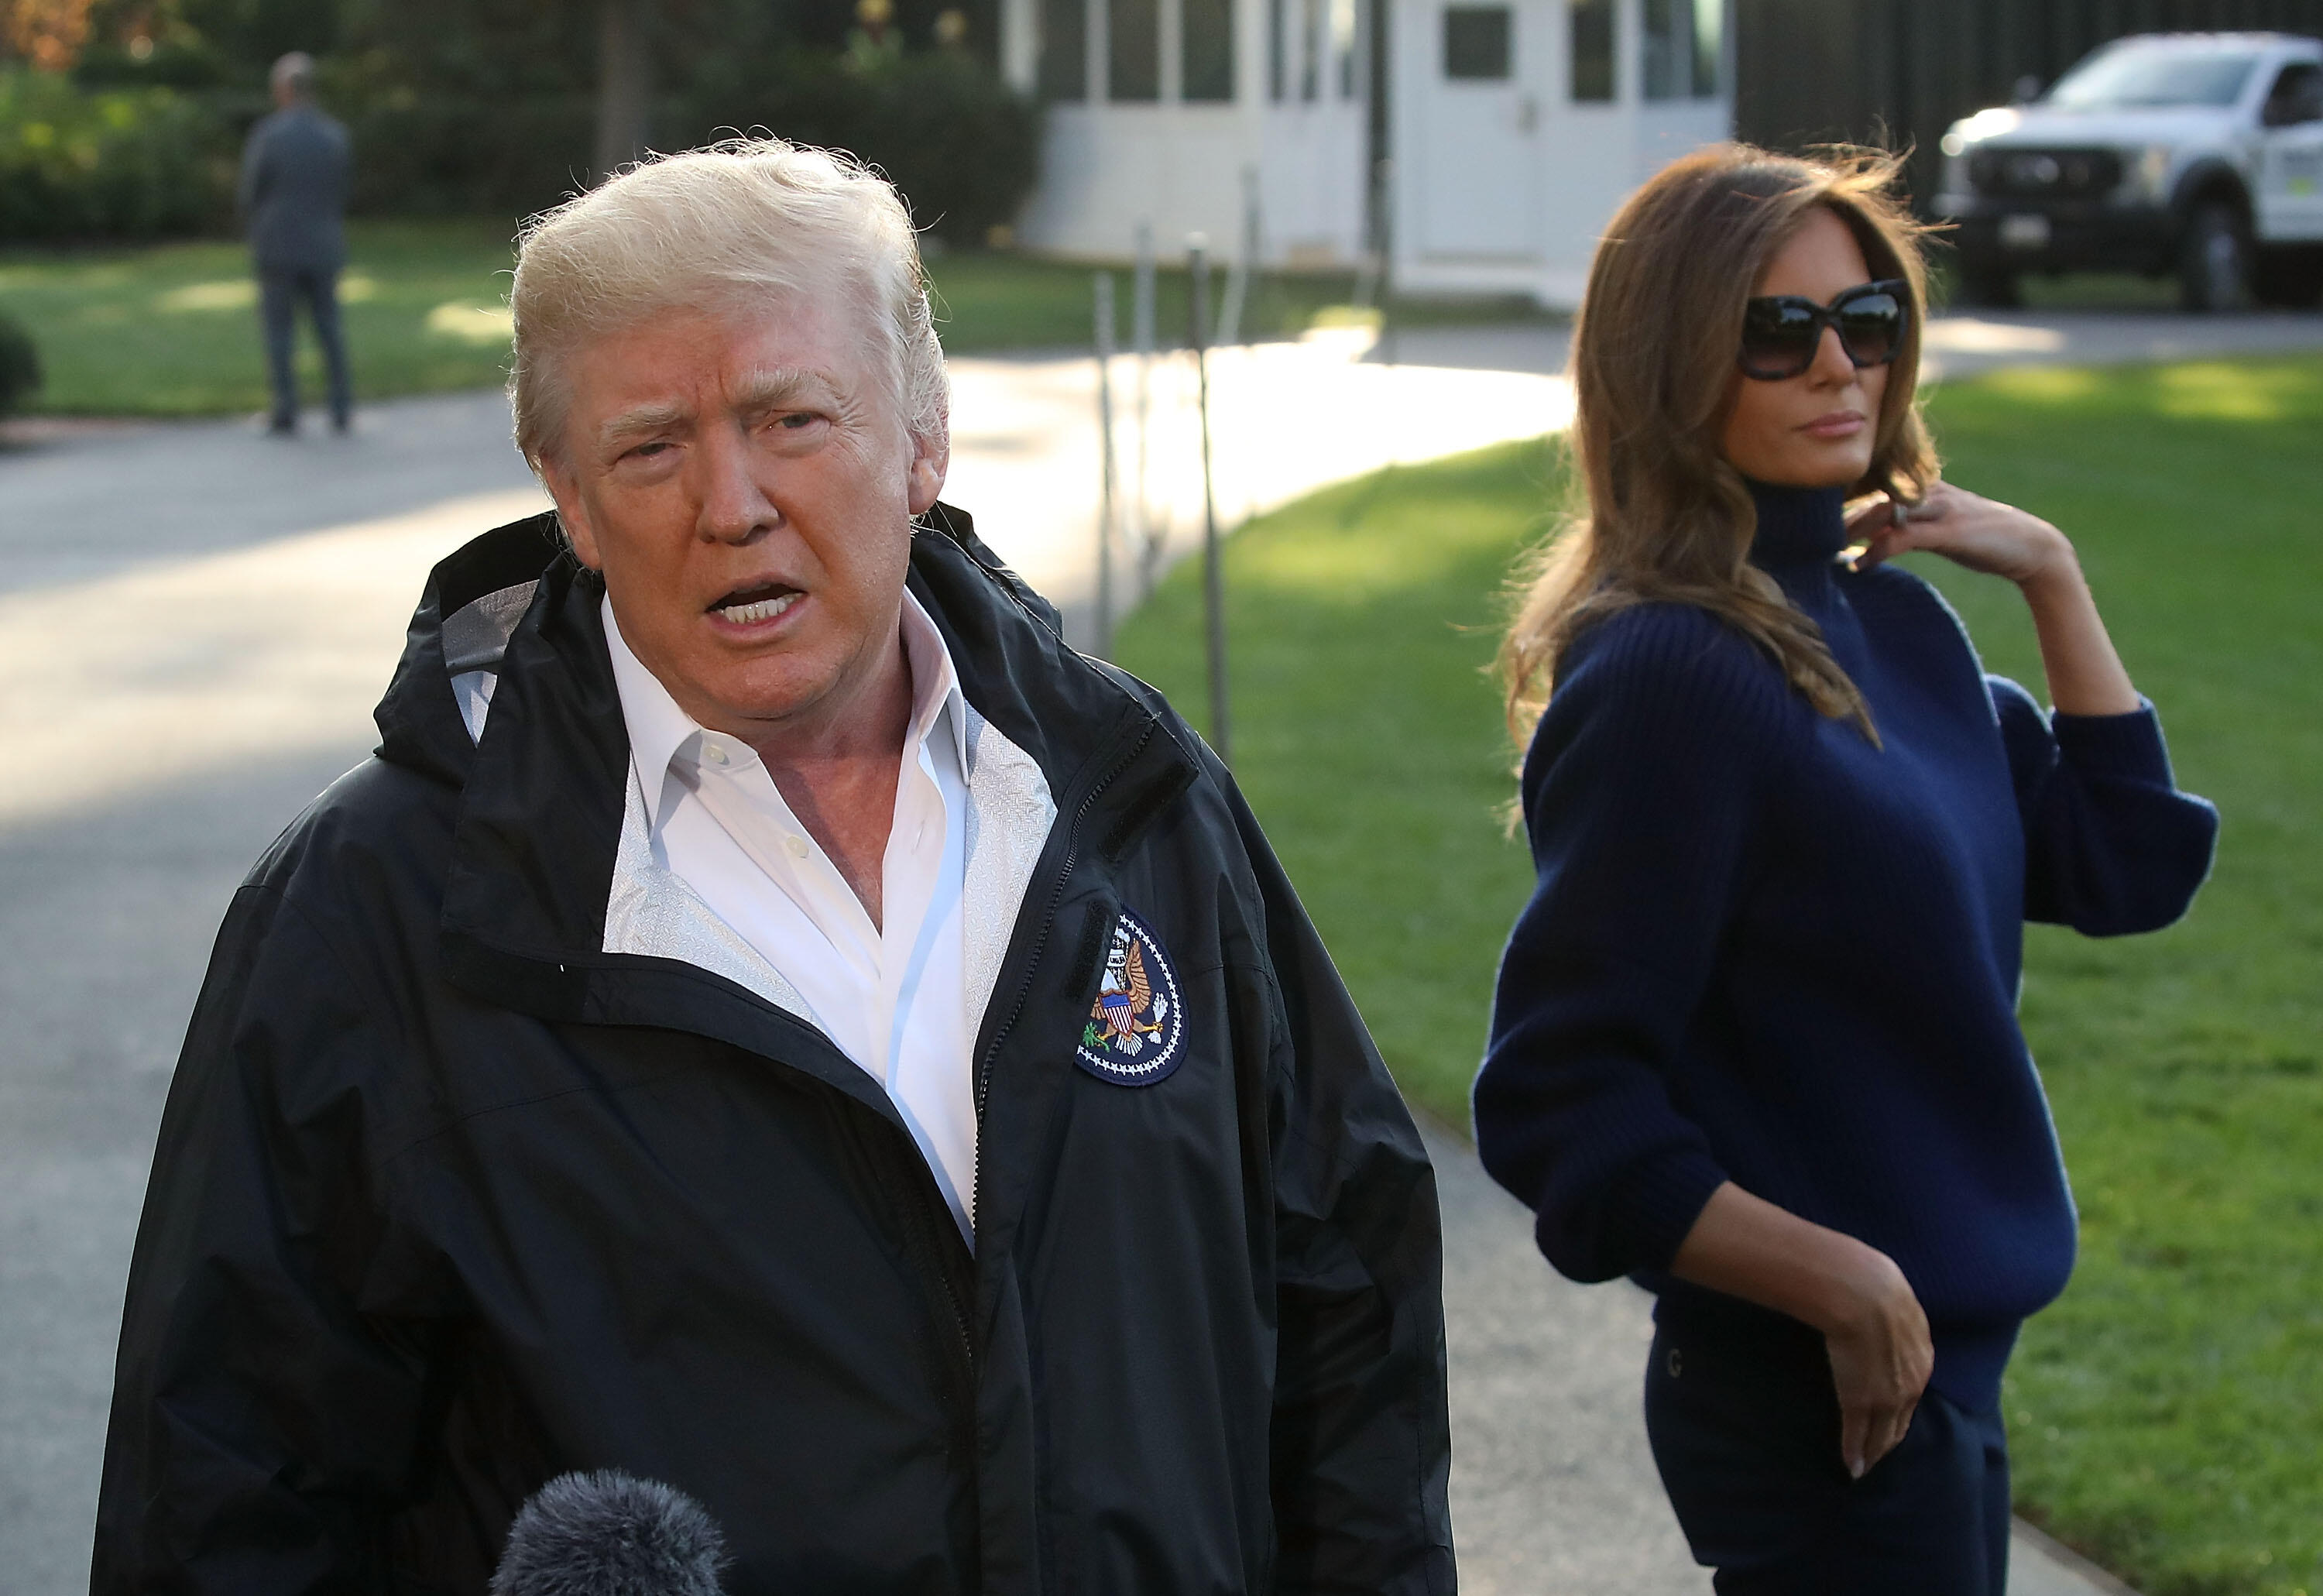 WASHINGTON, DC - OCTOBER 03: US President Donald Trump speaks to the media while flanked by first lady Melania Trump before departing on Marine One from the White House, on October 3, 2017, in Washington, DC. President Trump is traveling to Puerto Rico after it was ravaged by Hurricane Maria last month. (Photo by Mark Wilson/Getty Images)